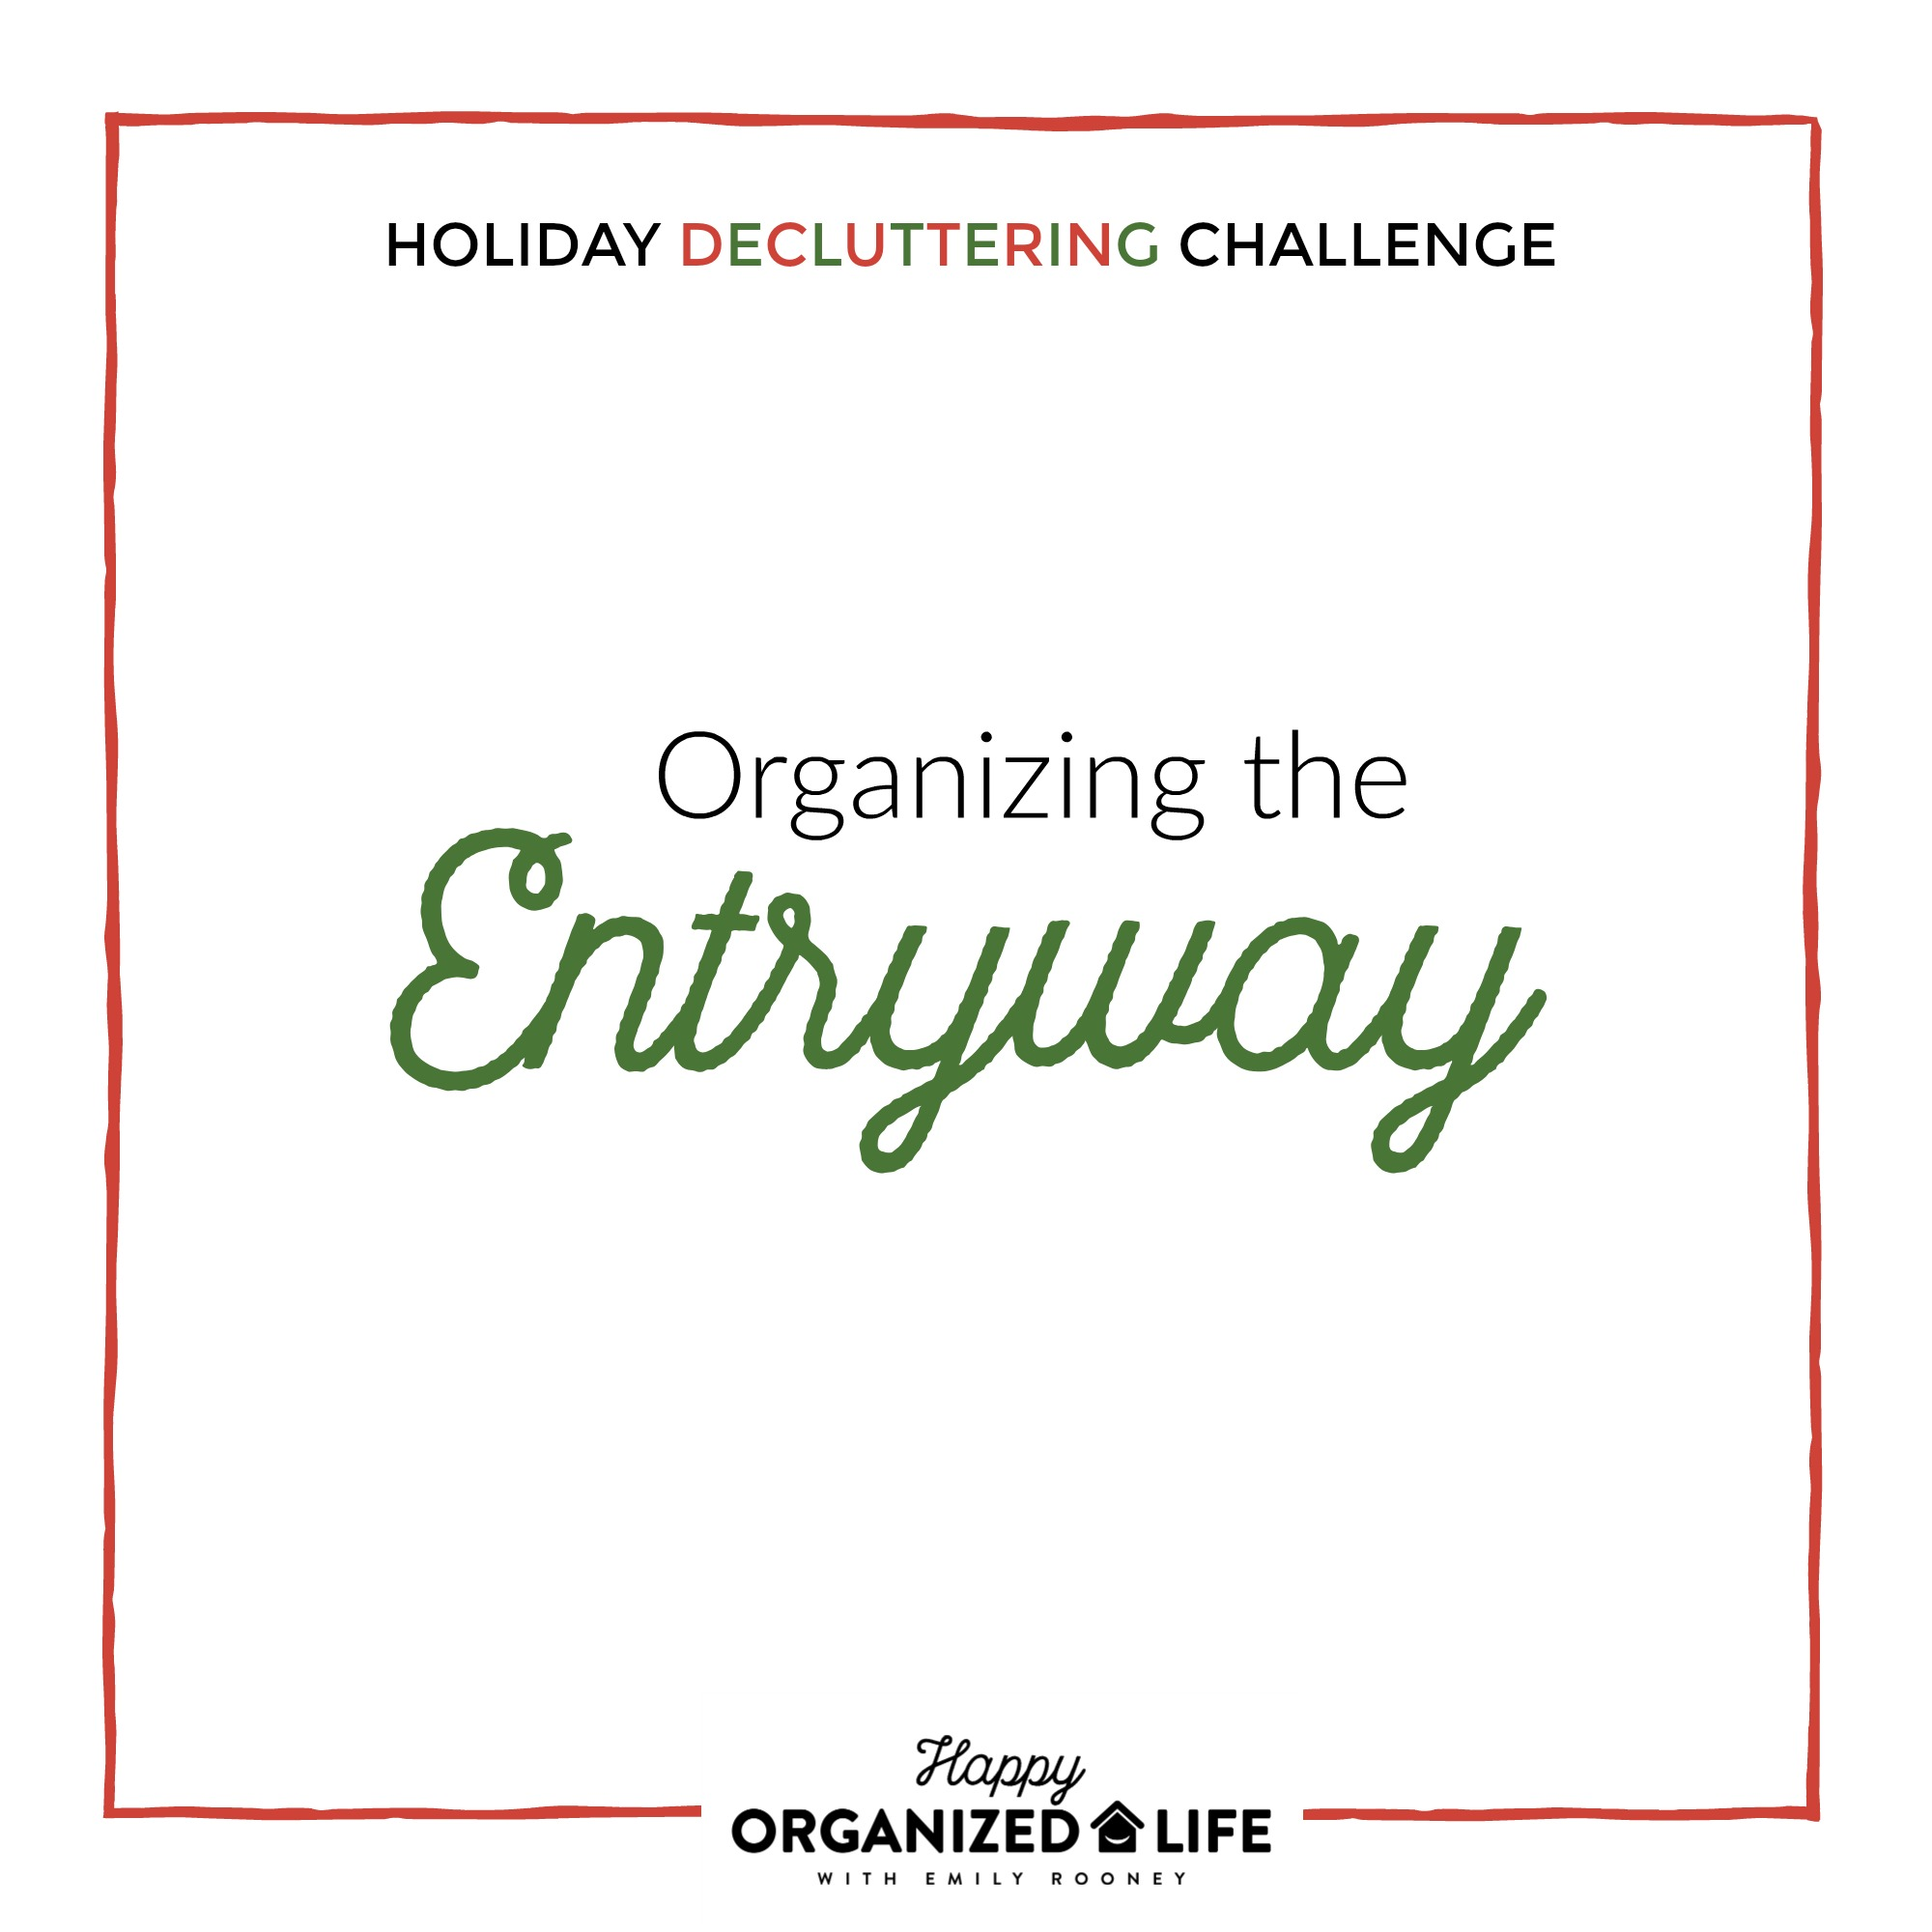 Does your entryway make your guests feel welcomed or want to run? Make a great first impression with a decluttered and organized entryway!